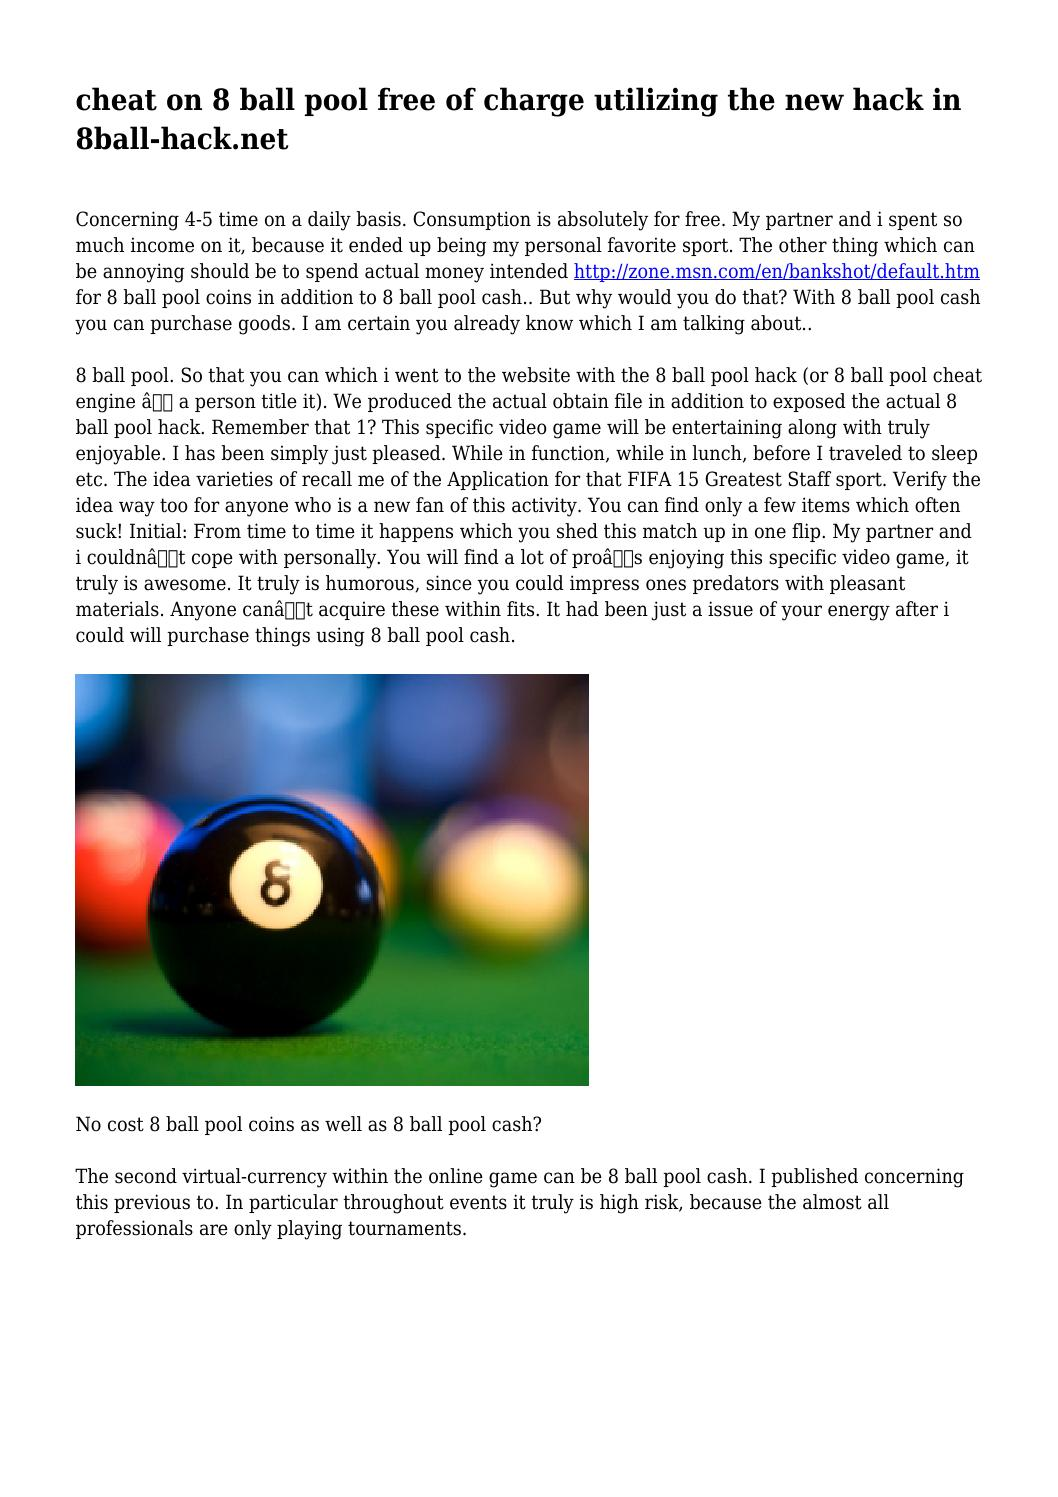 cheat on 8 ball pool free of charge utilizing the new hack in 8ball